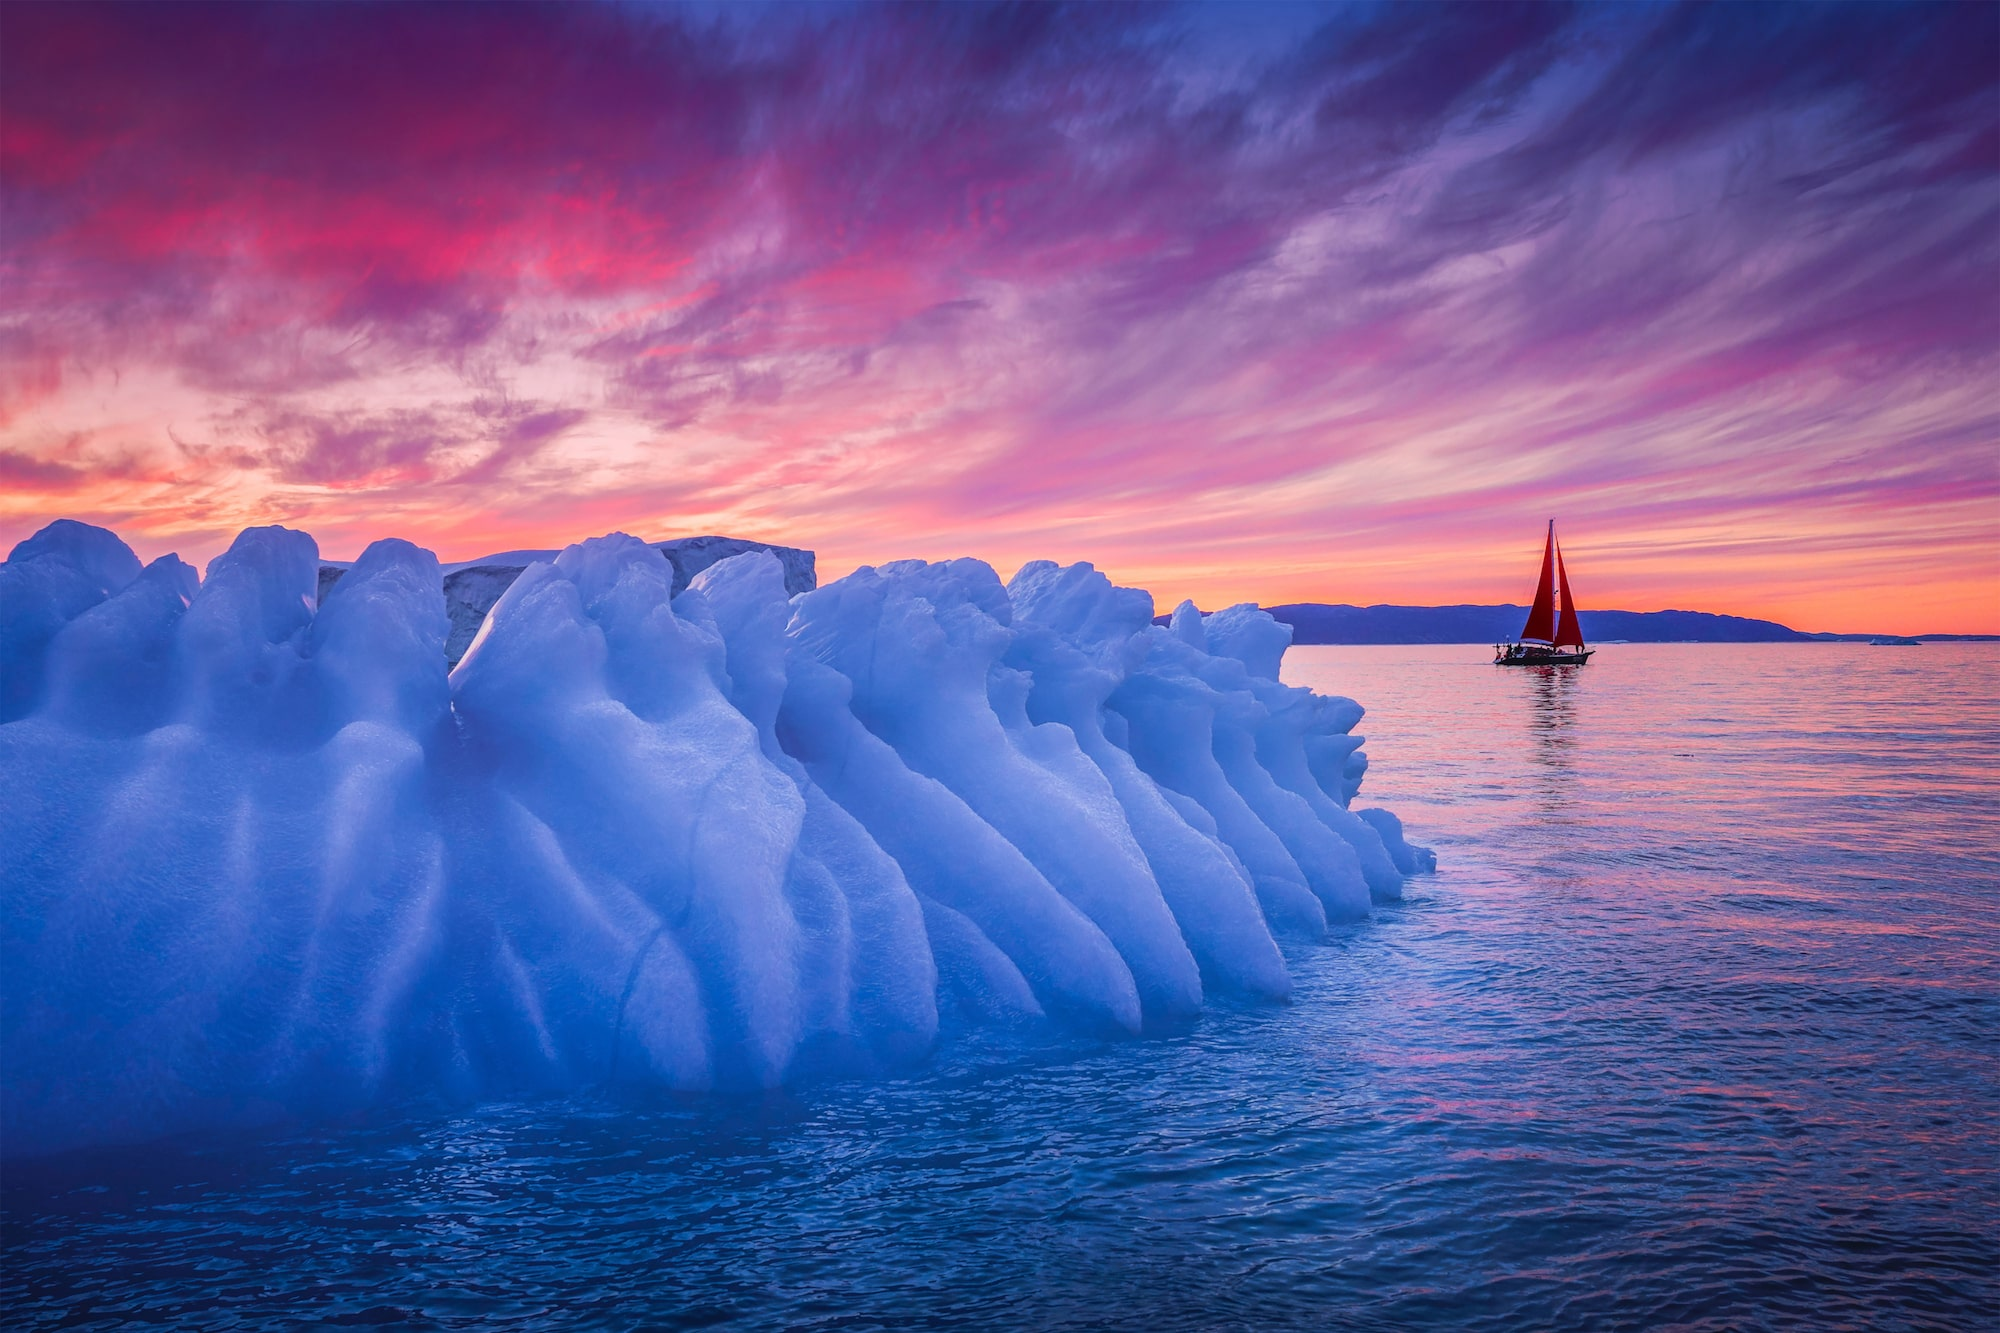 albert dros sony alpha A7RM4 sunset over a blue iceberg in greenland